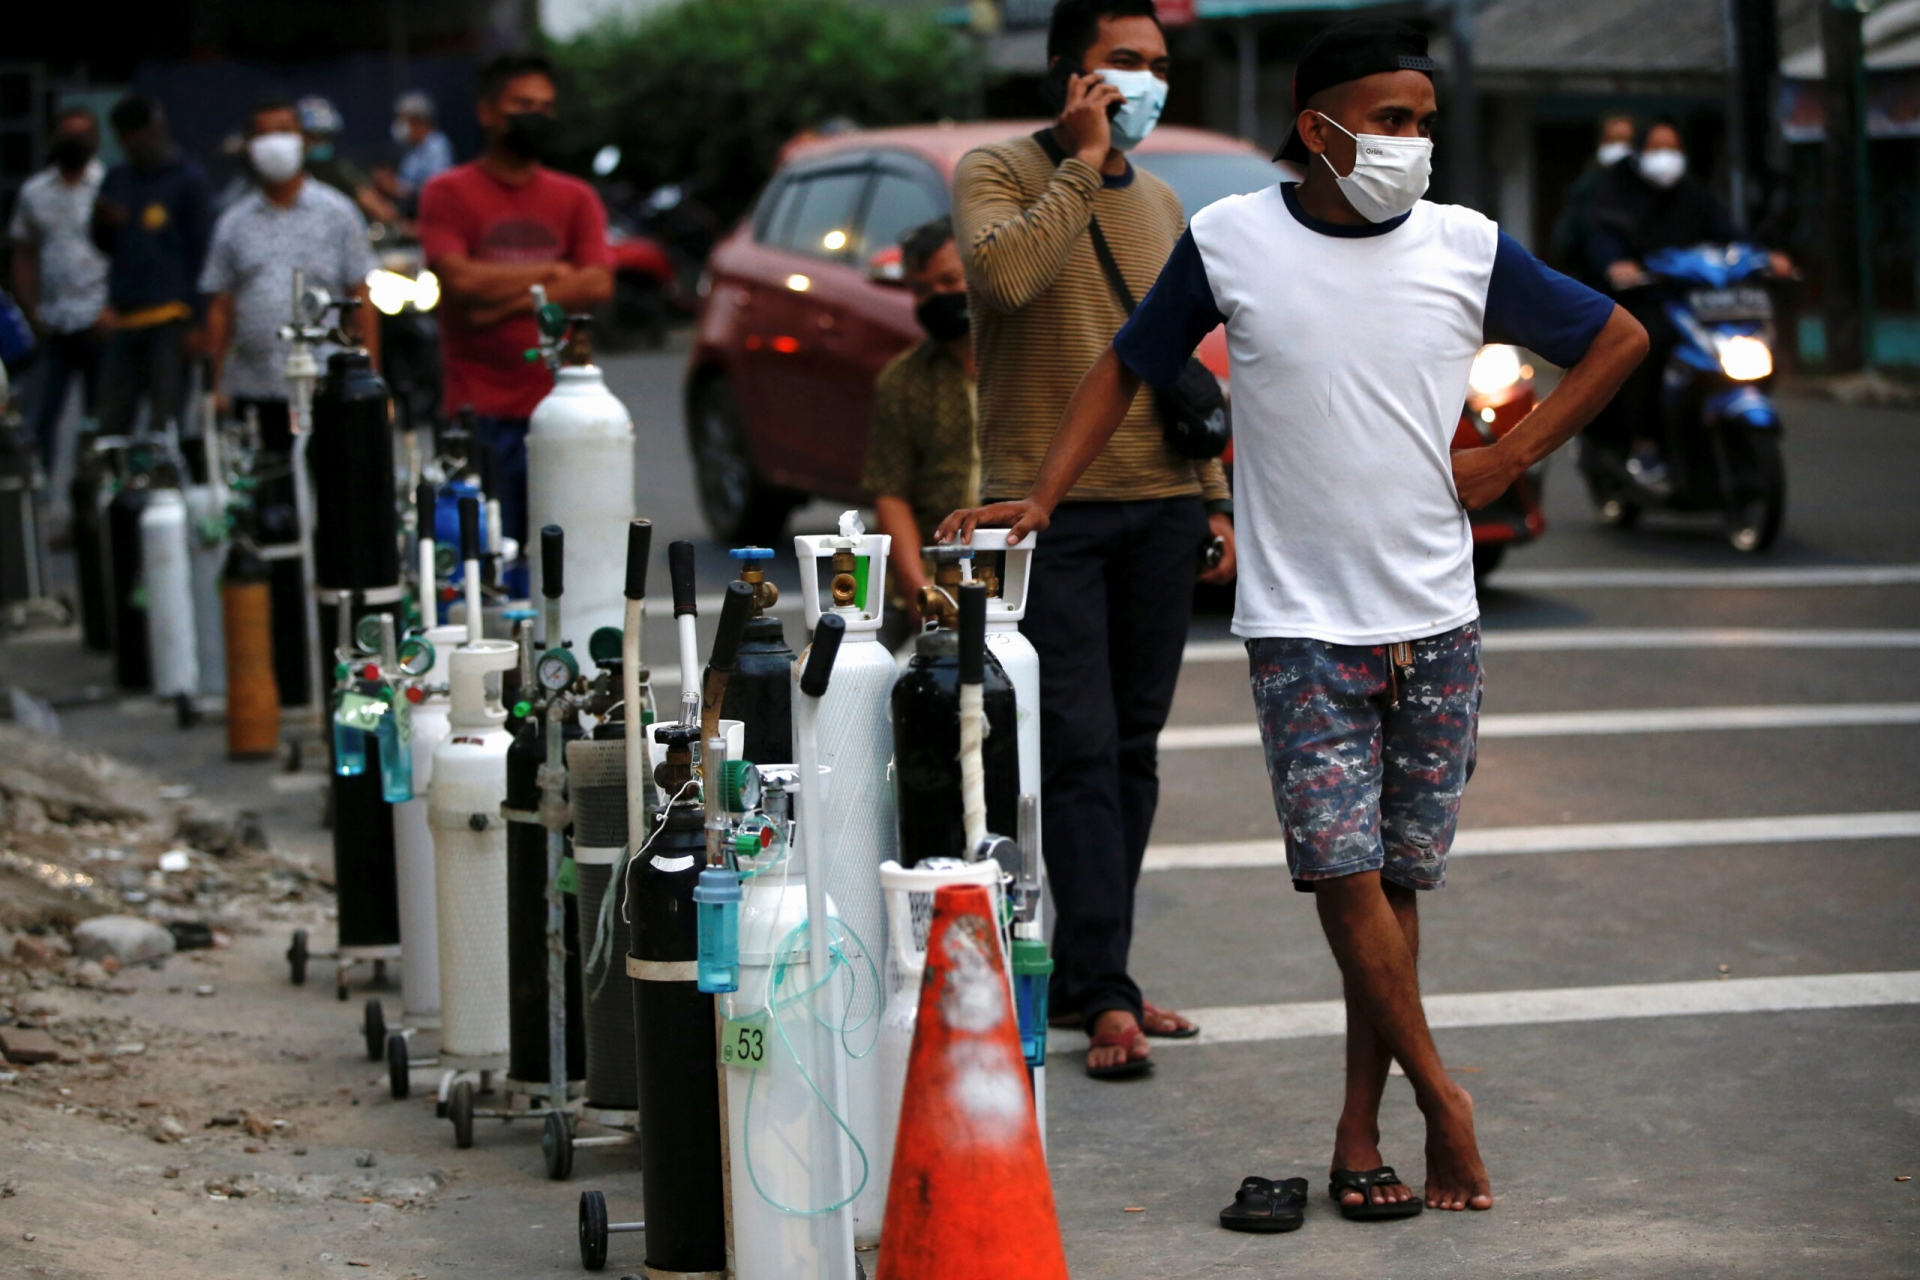 People queue to refill oxygen tanks as Indonesia experiences an oxygen supply shortage. Photo Reuters